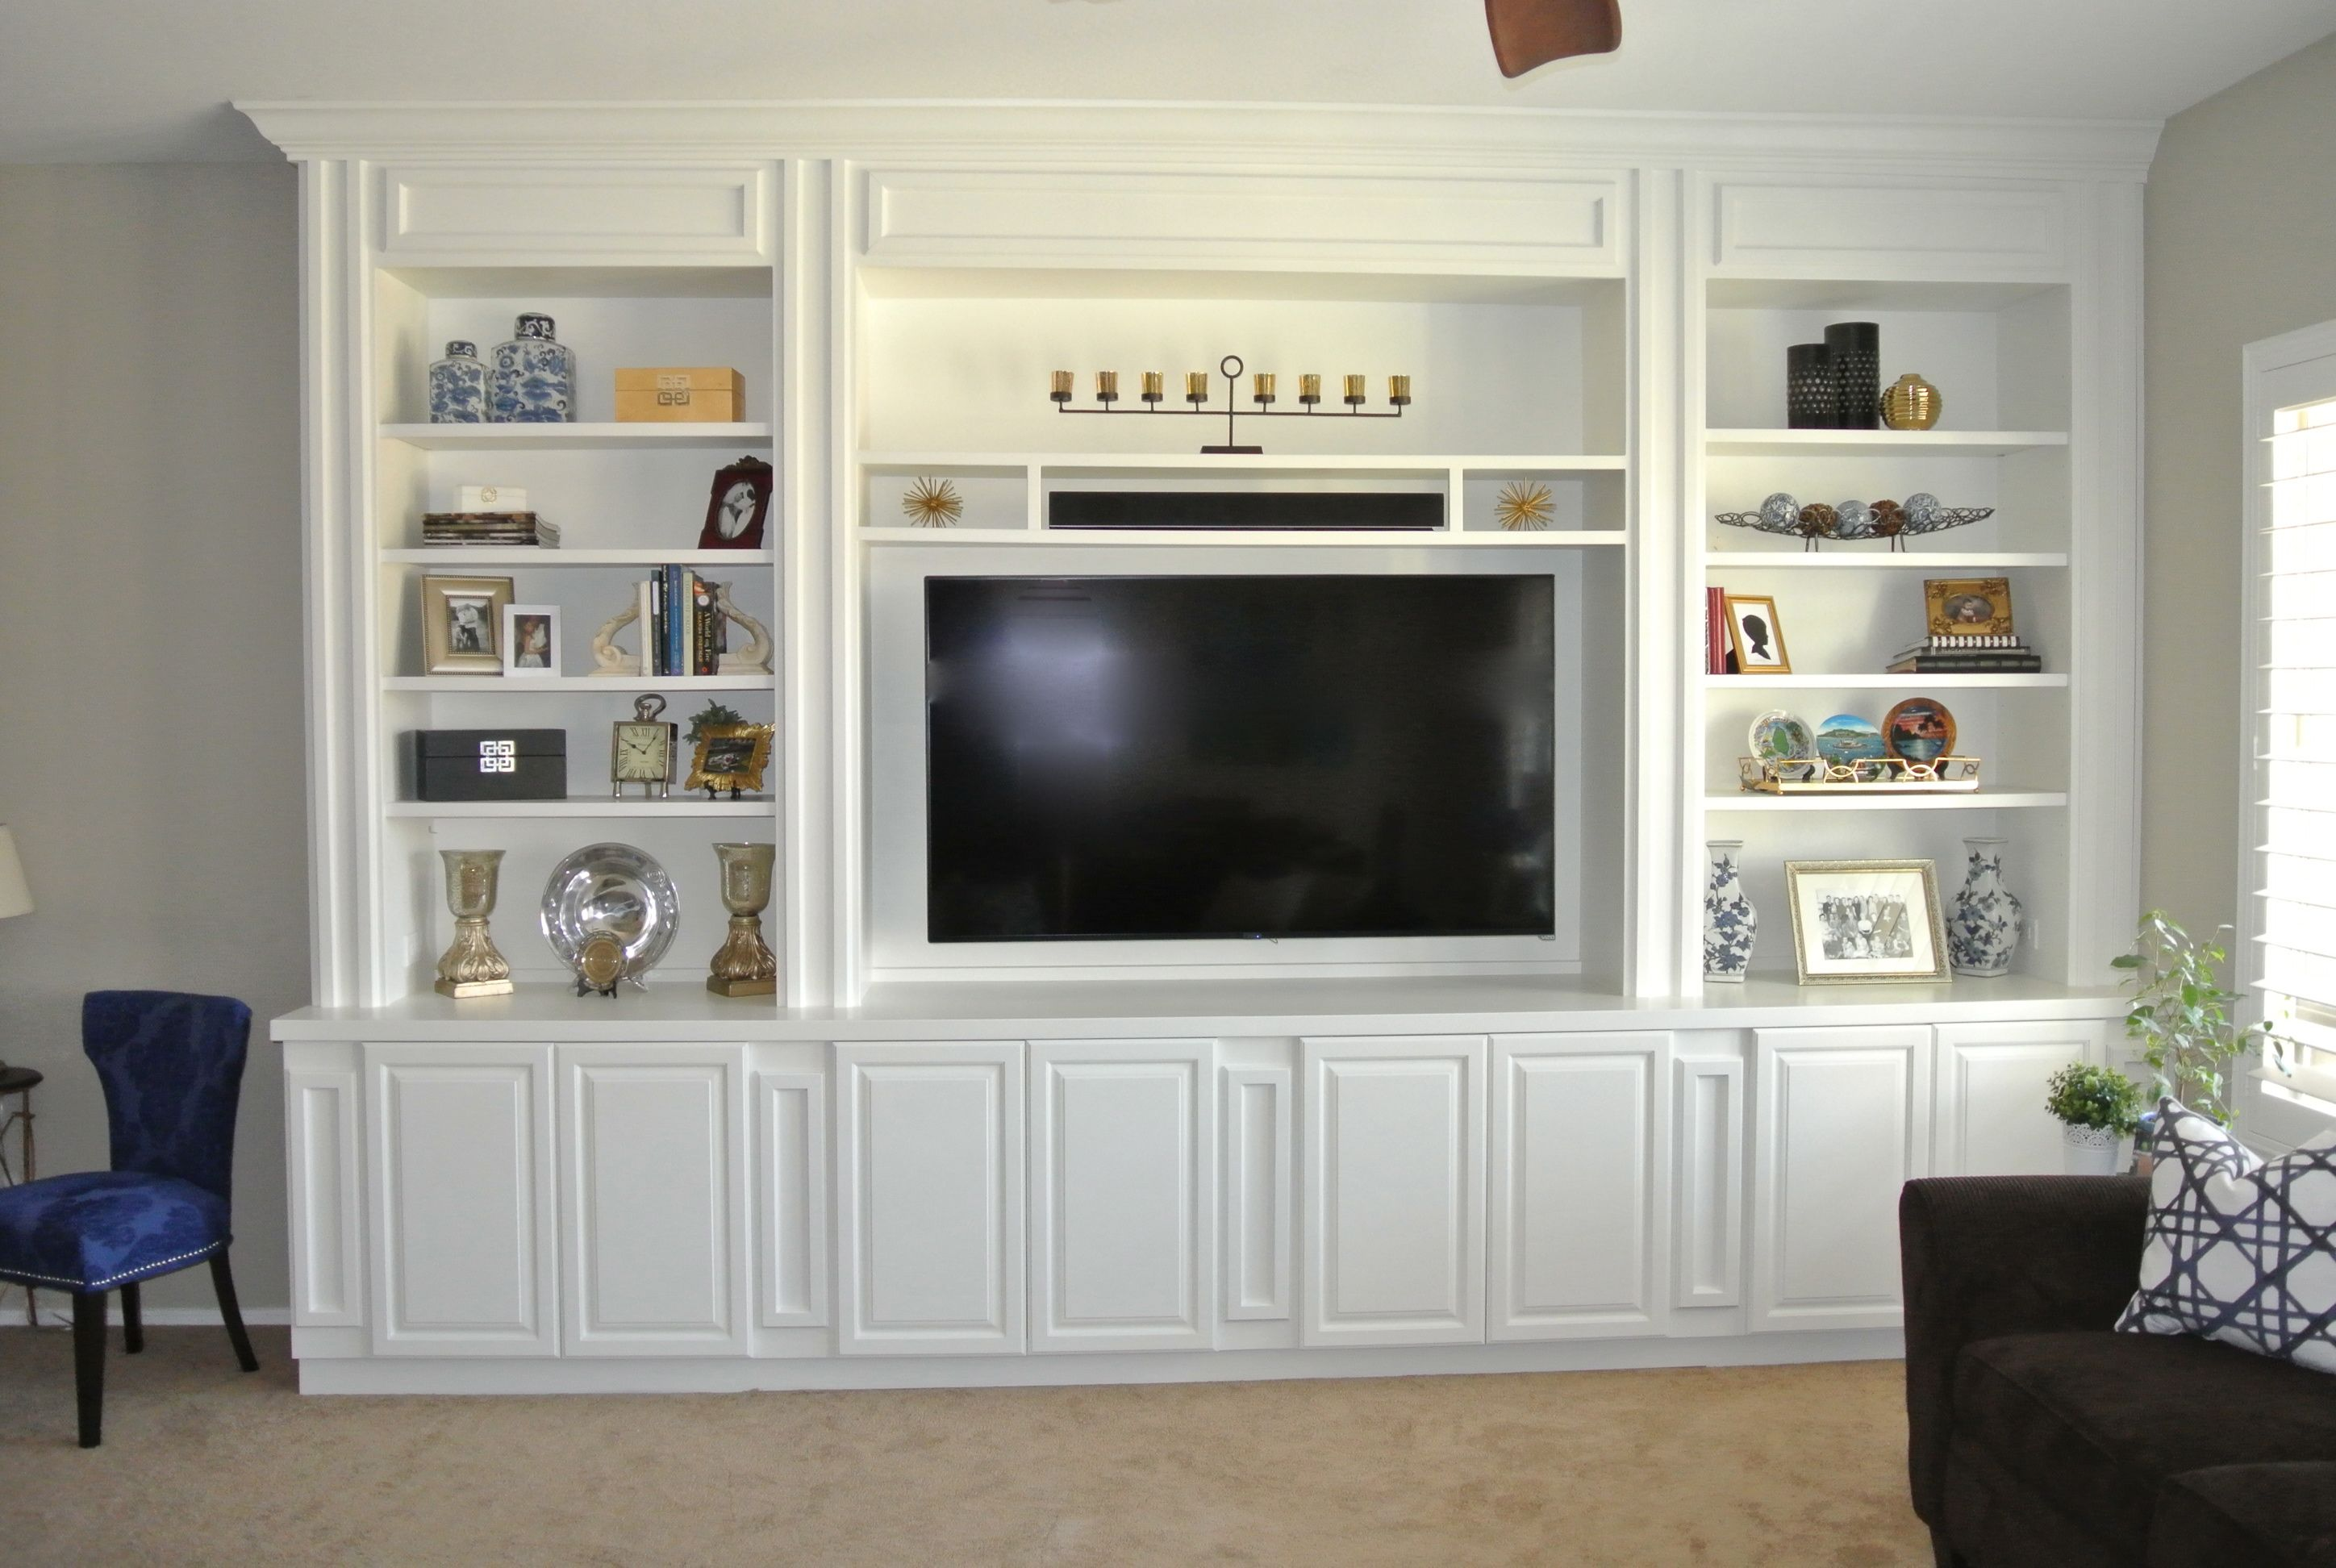 Live Style Love Designs a custom white built-in ...